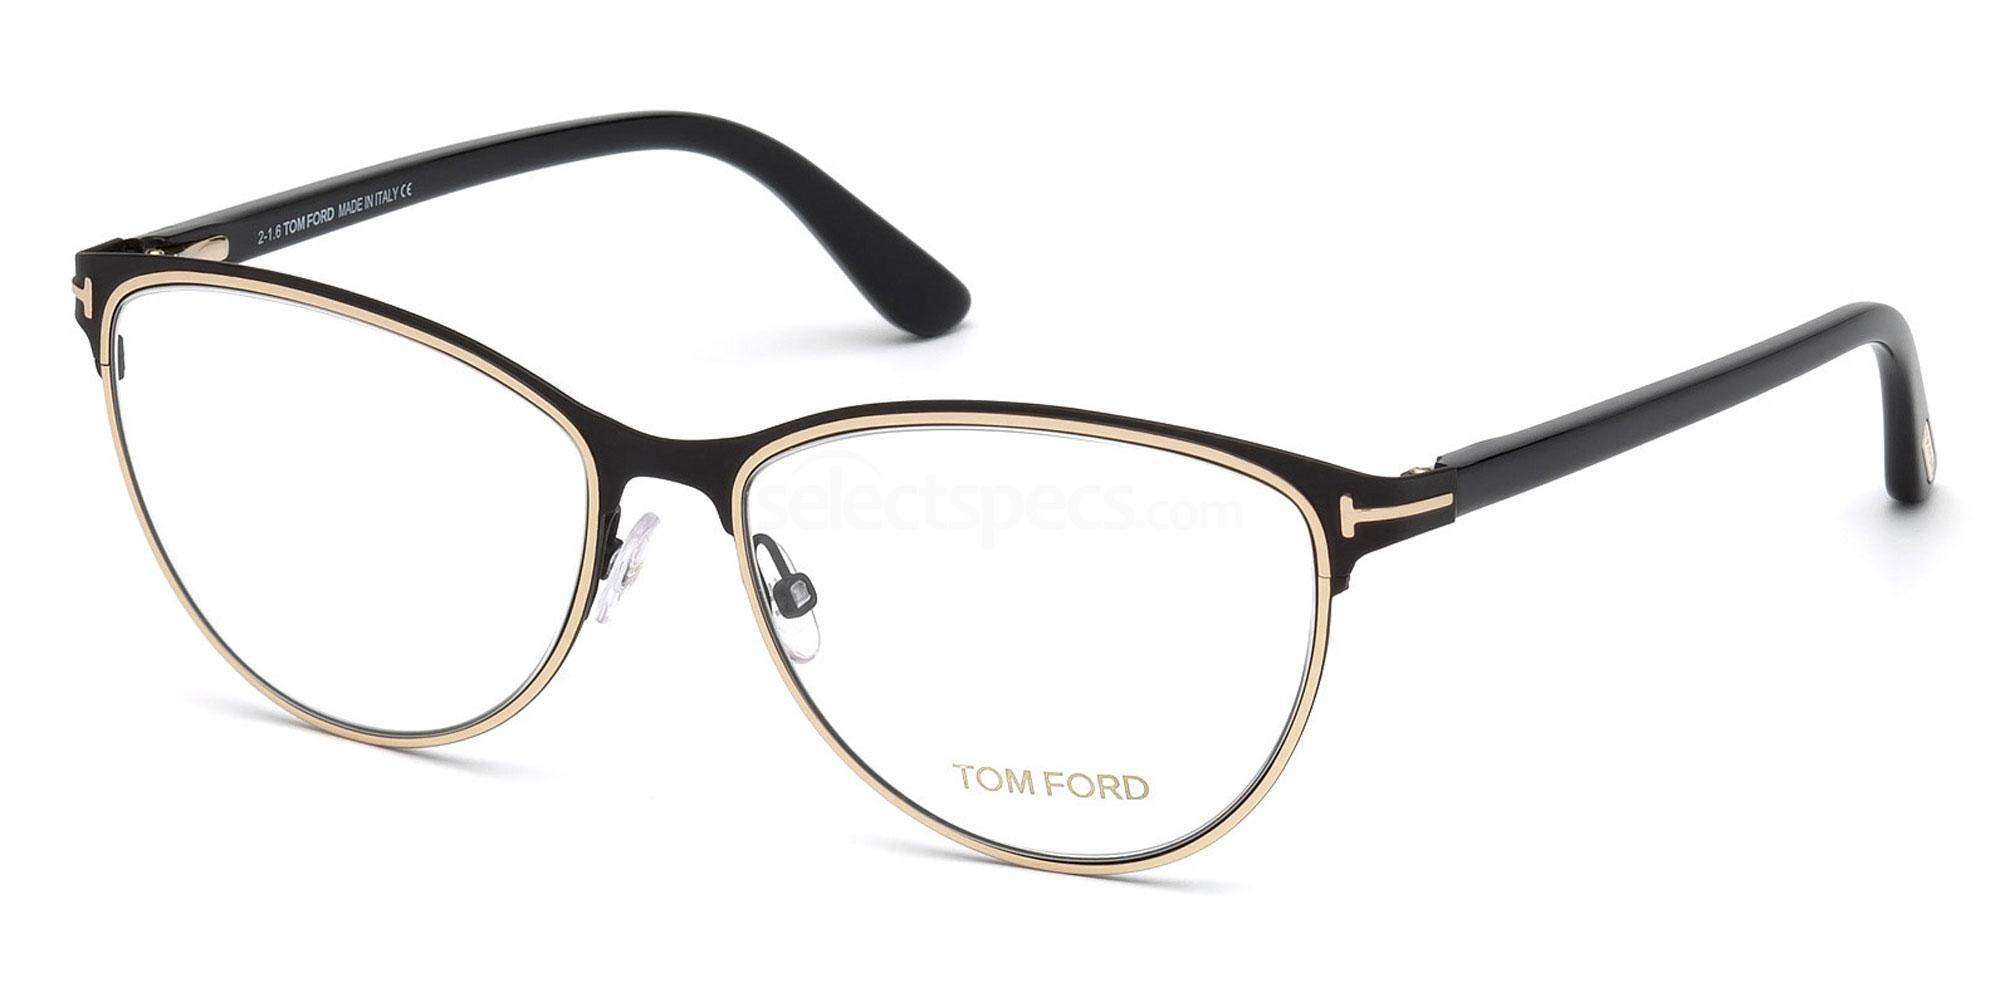 005 FT5420 Glasses, Tom Ford